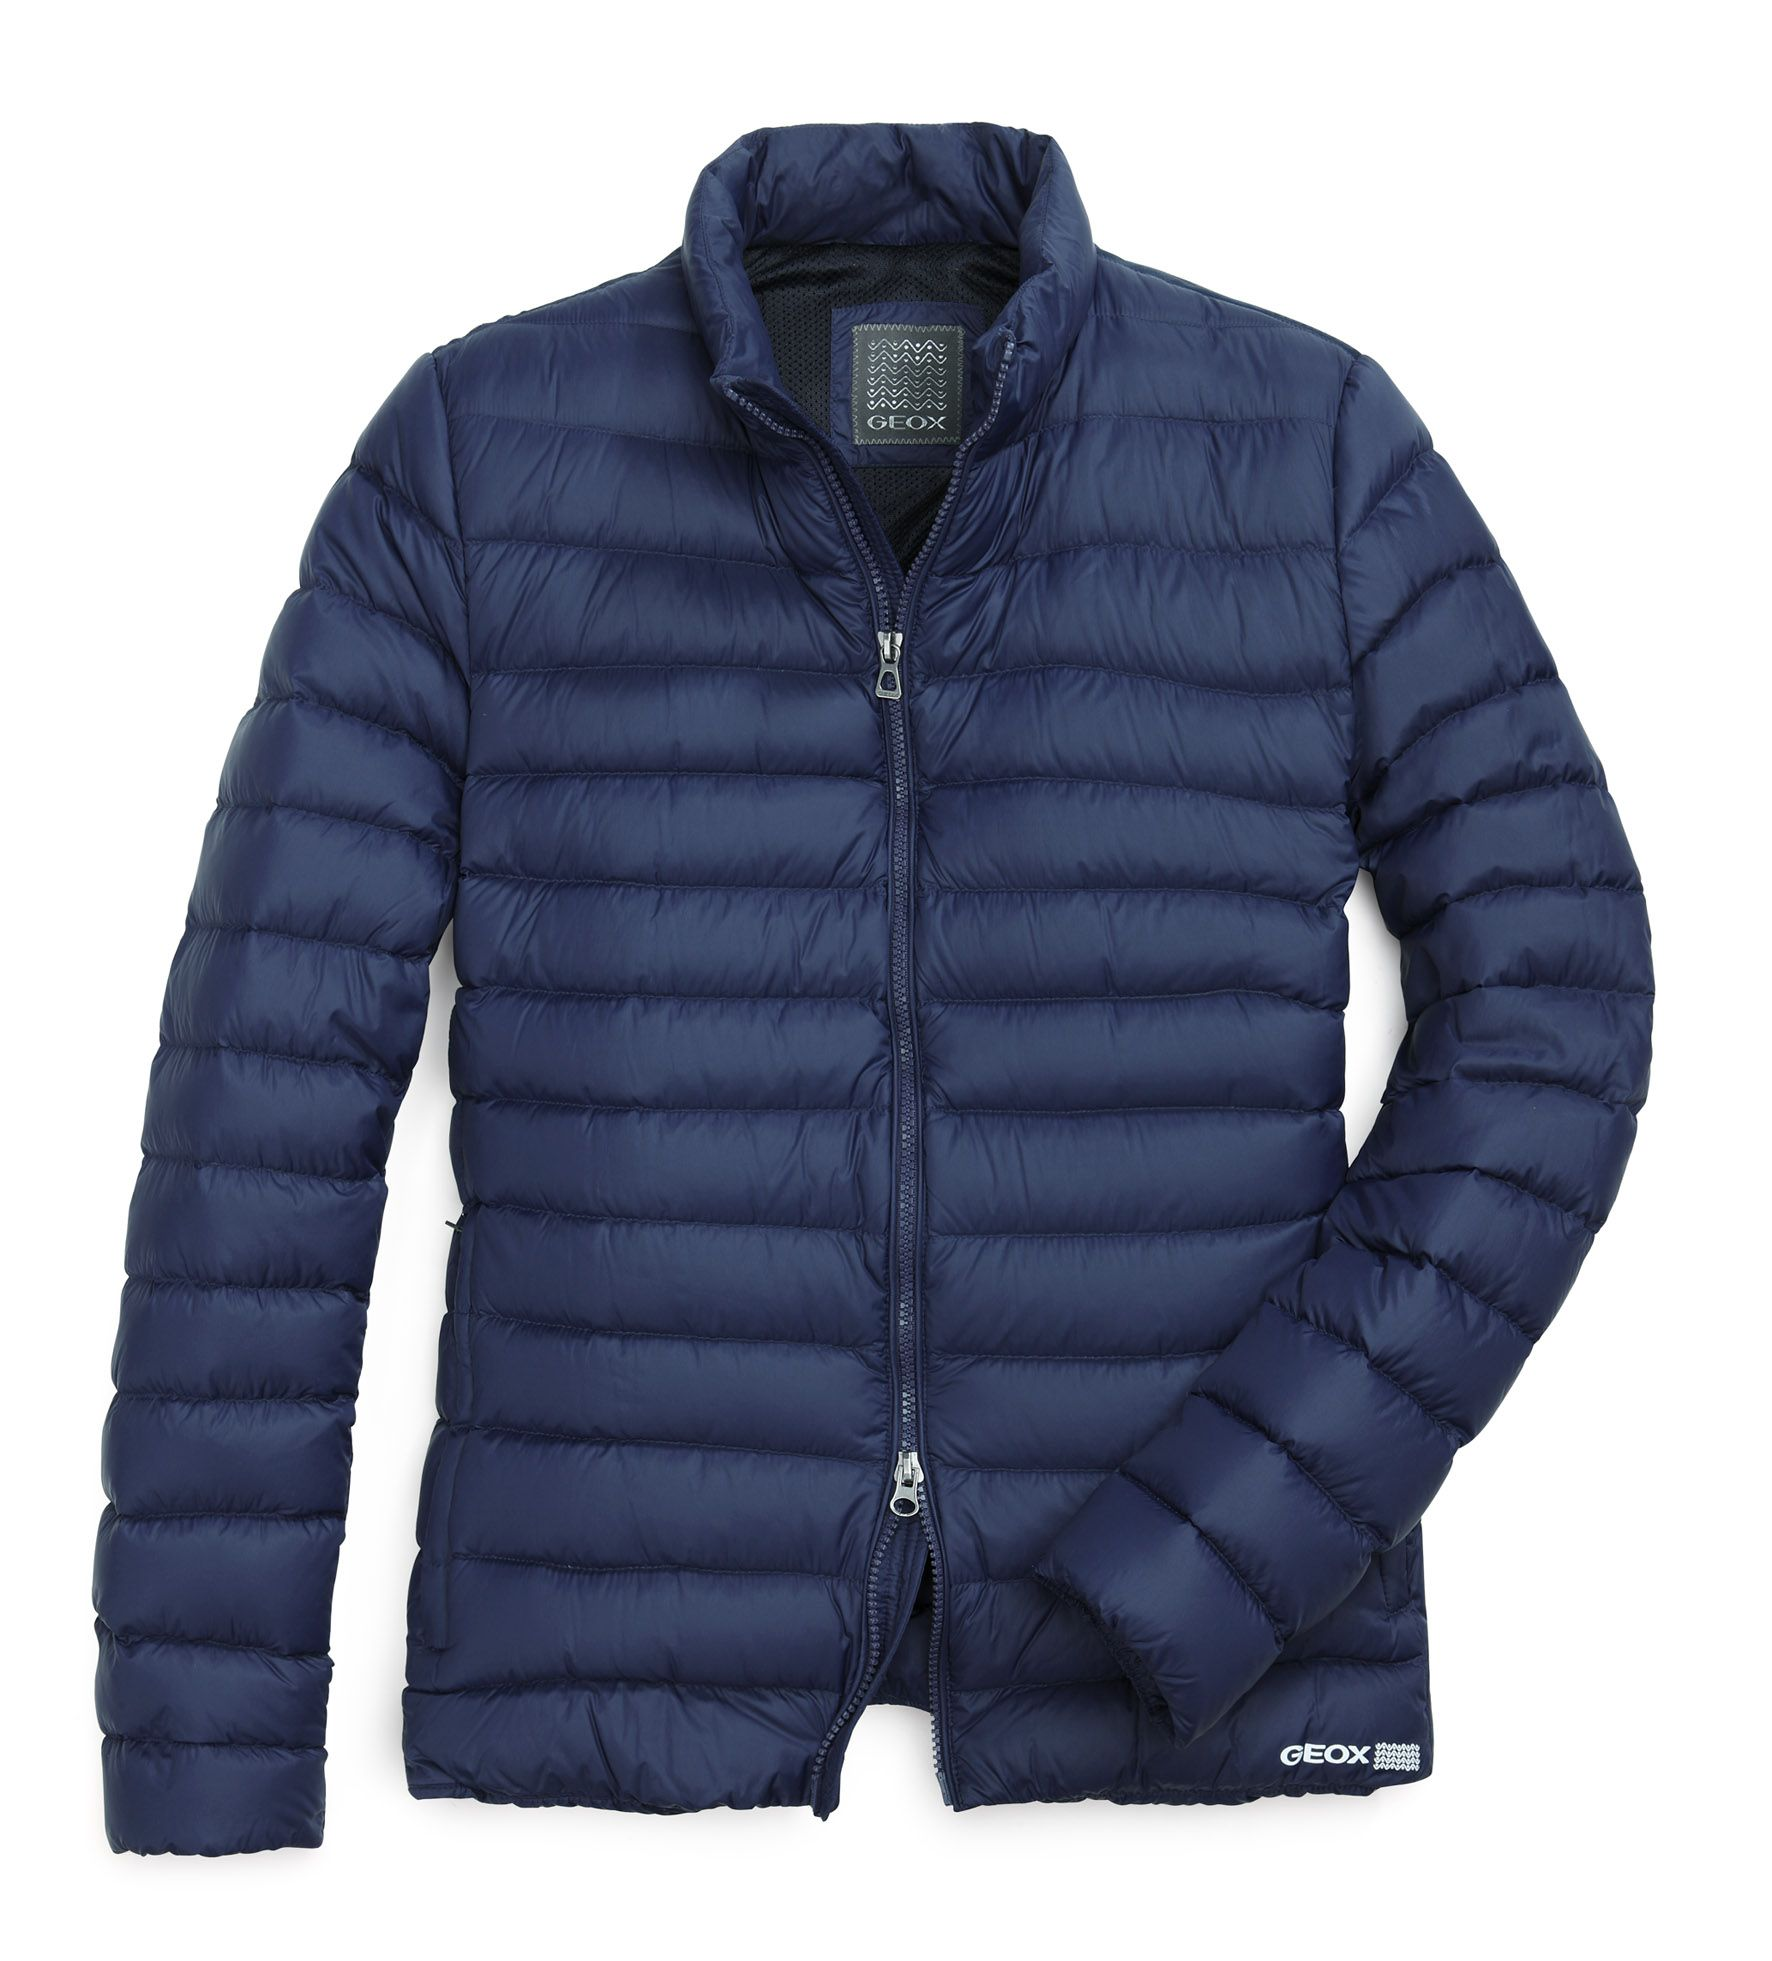 GEOX Man Quilted Jacket